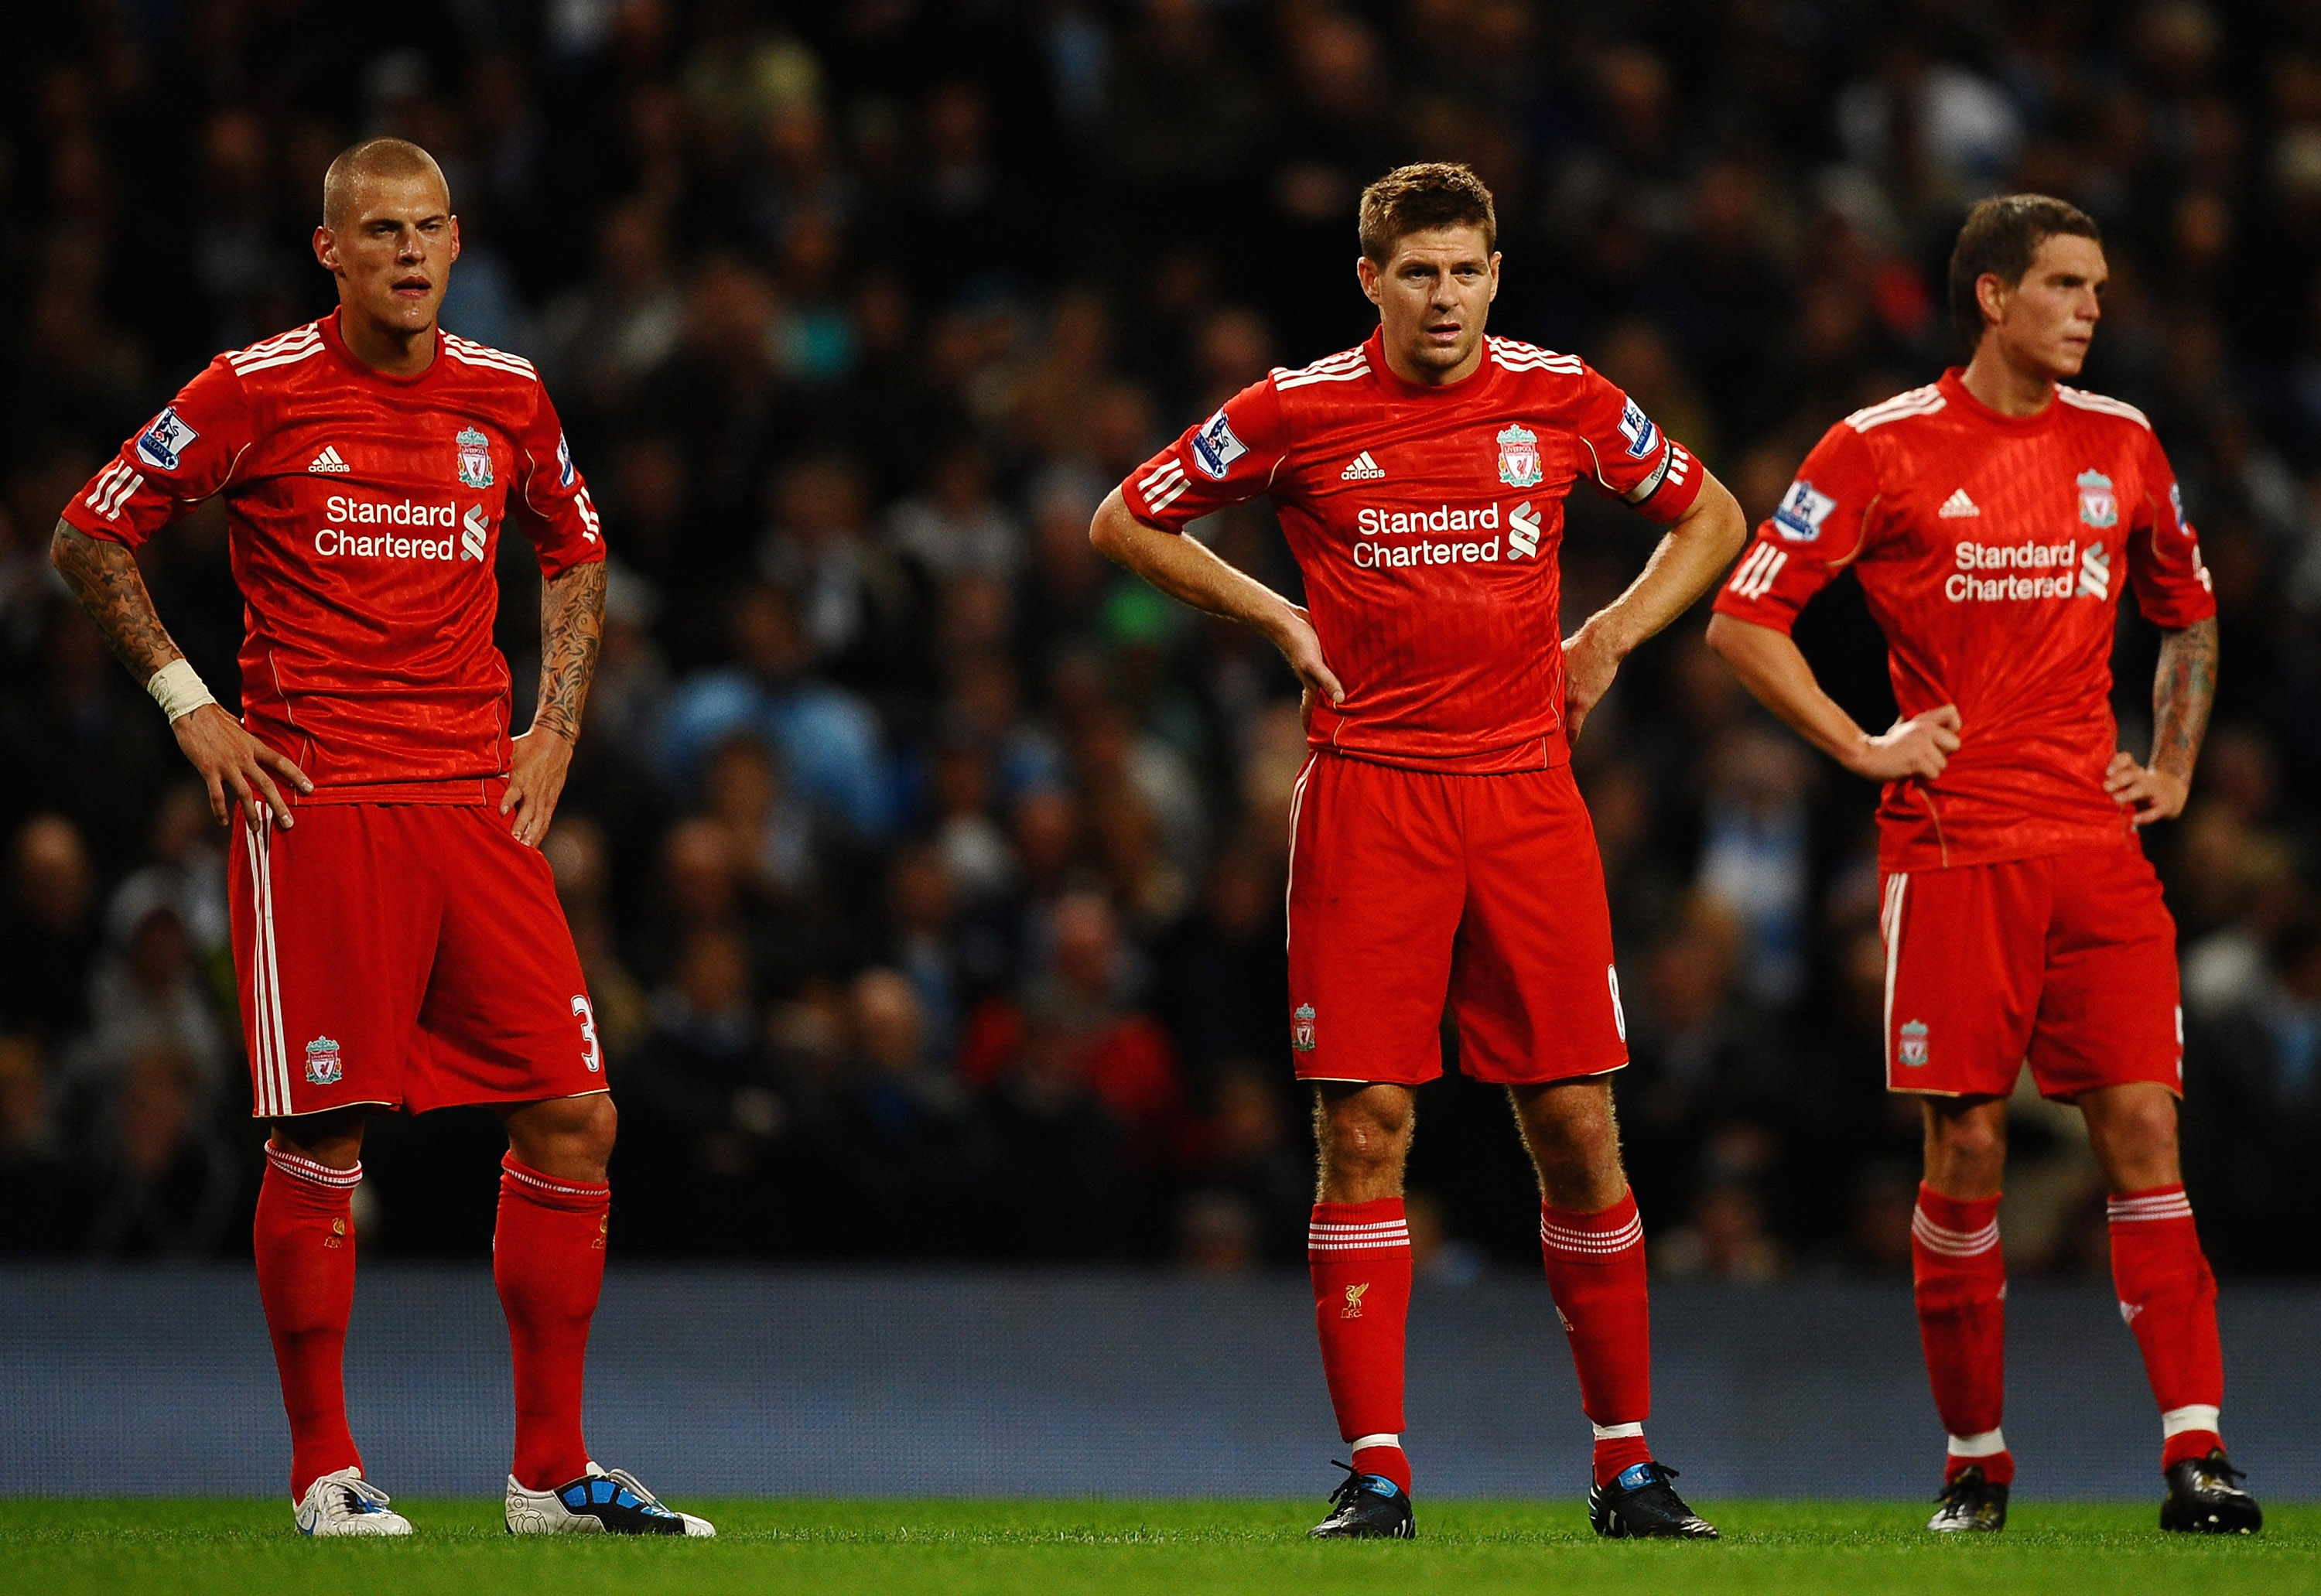 Baffled Reds' Players Delve Look Distraught after City Hammering